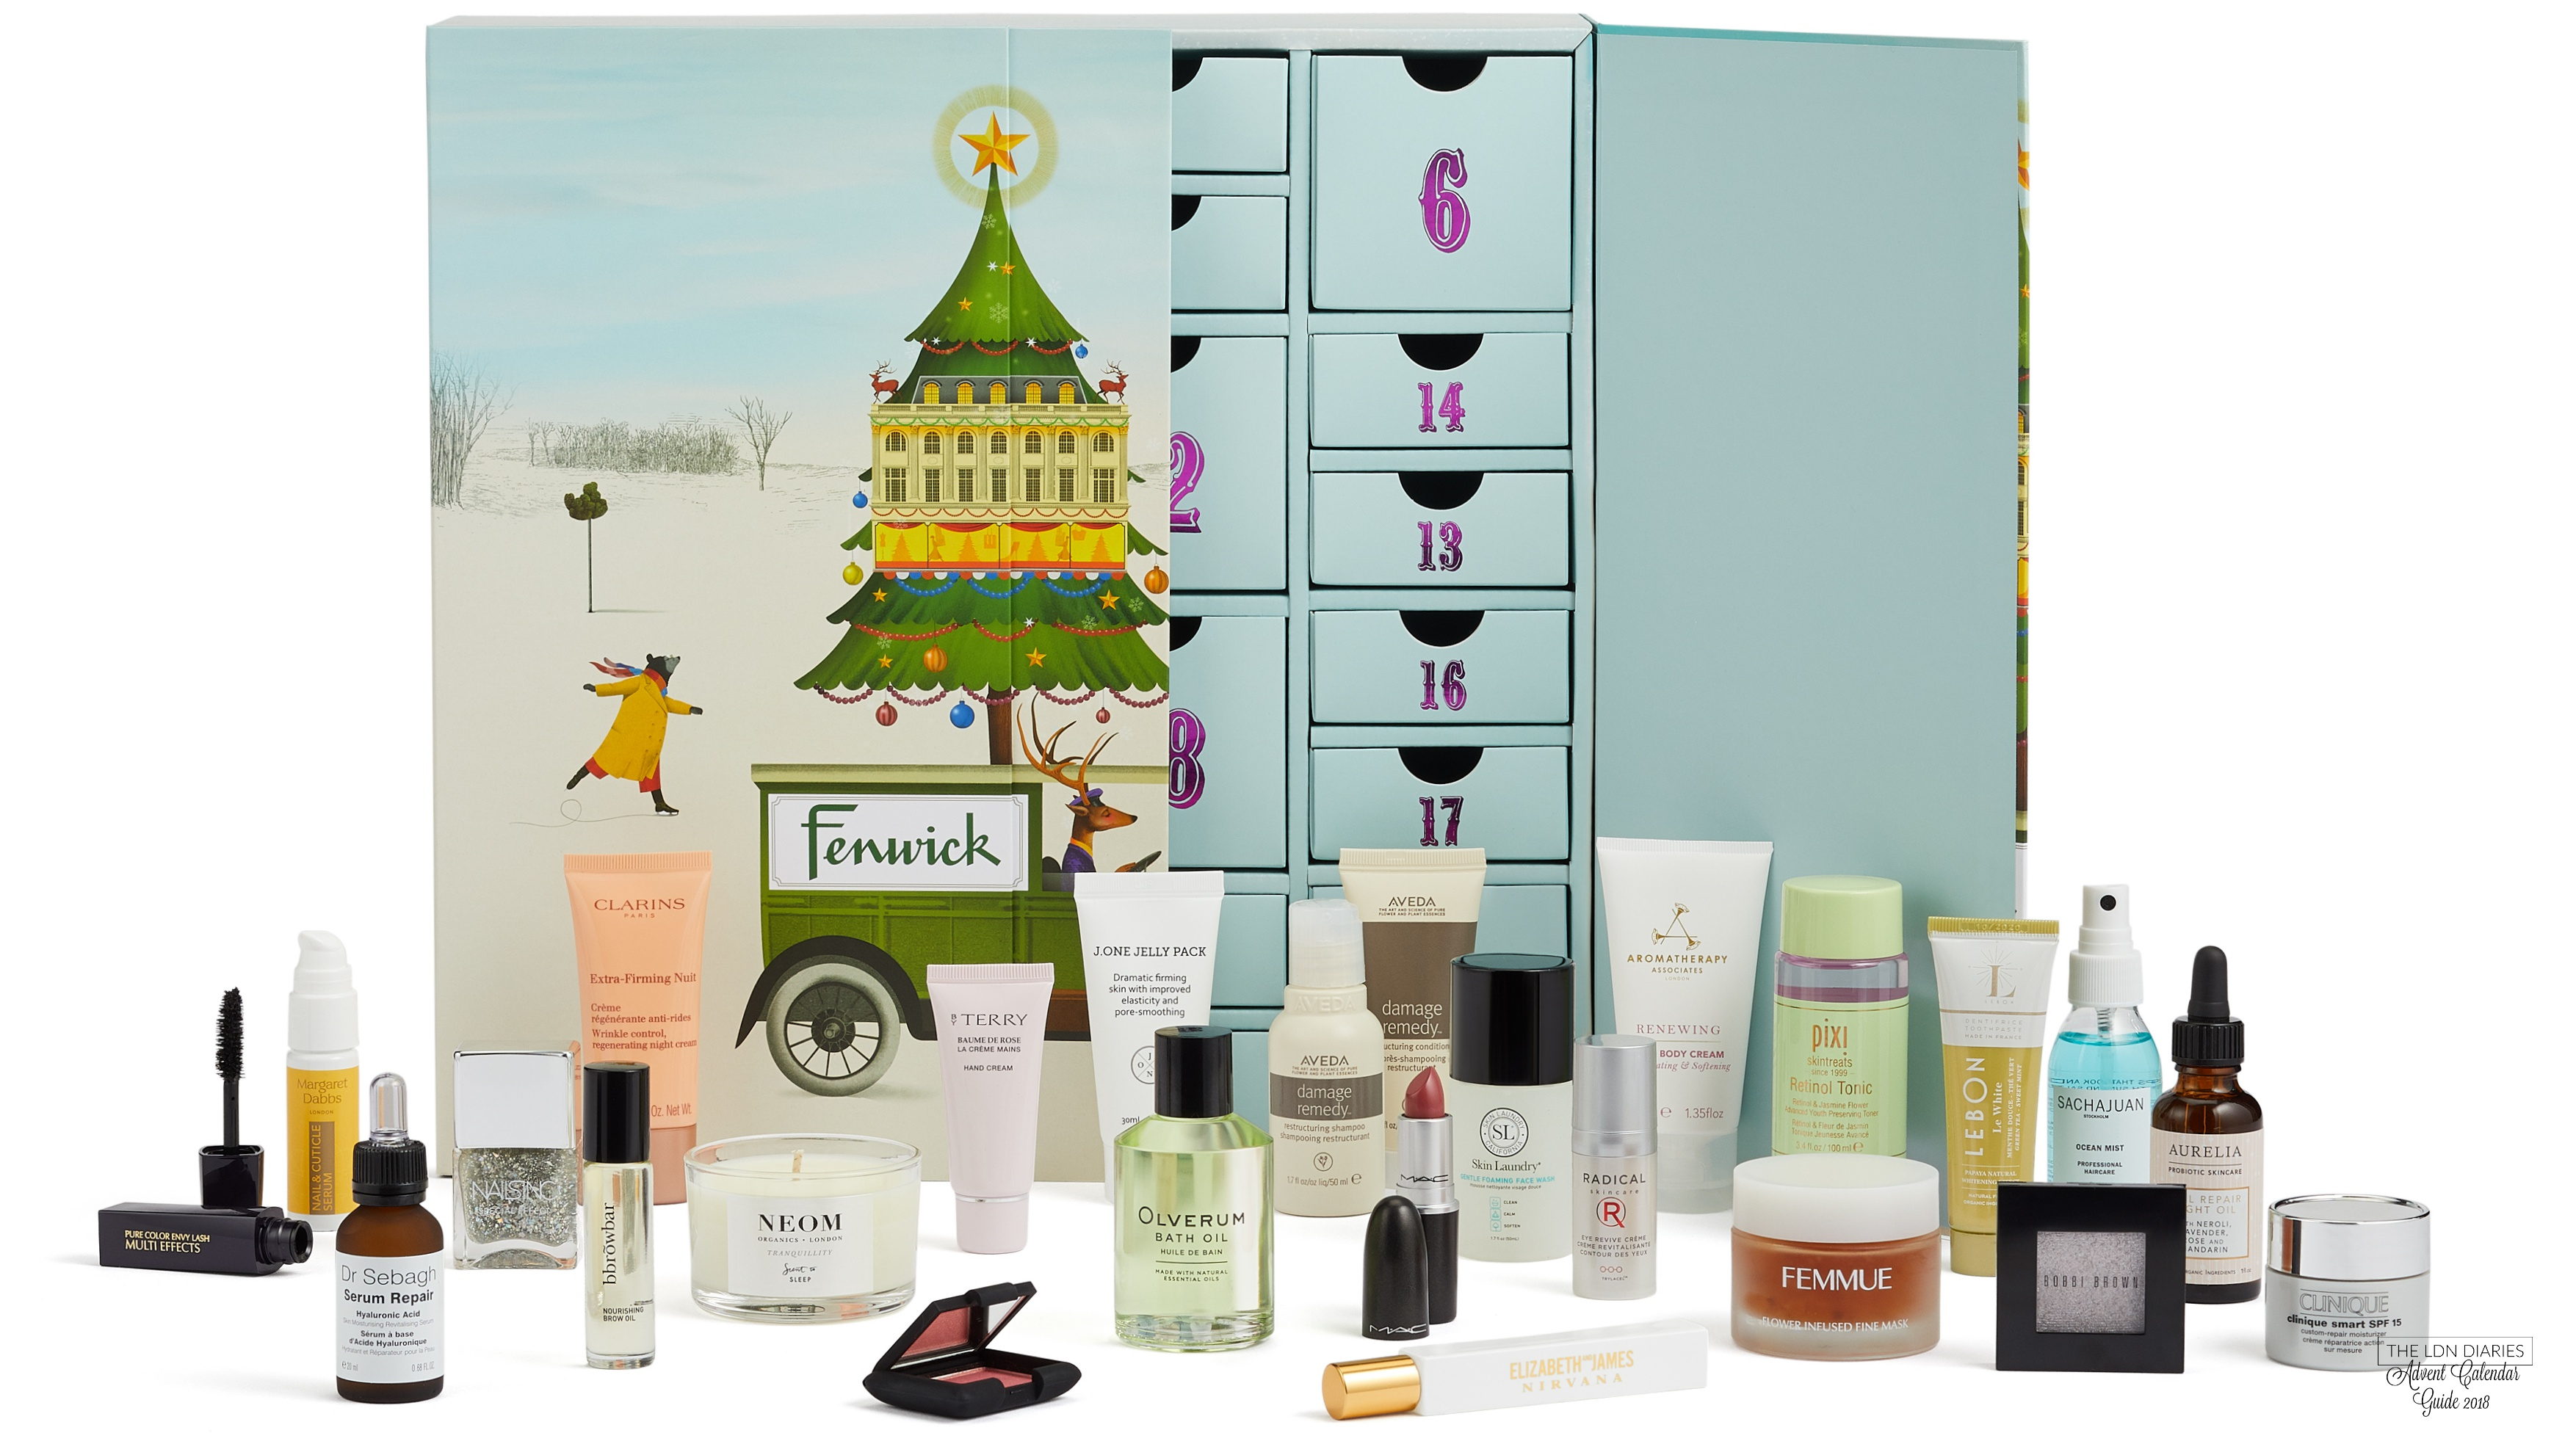 Fenwick of Bond Street Beauty Advent Calendar 2018 - The LDN Diaries